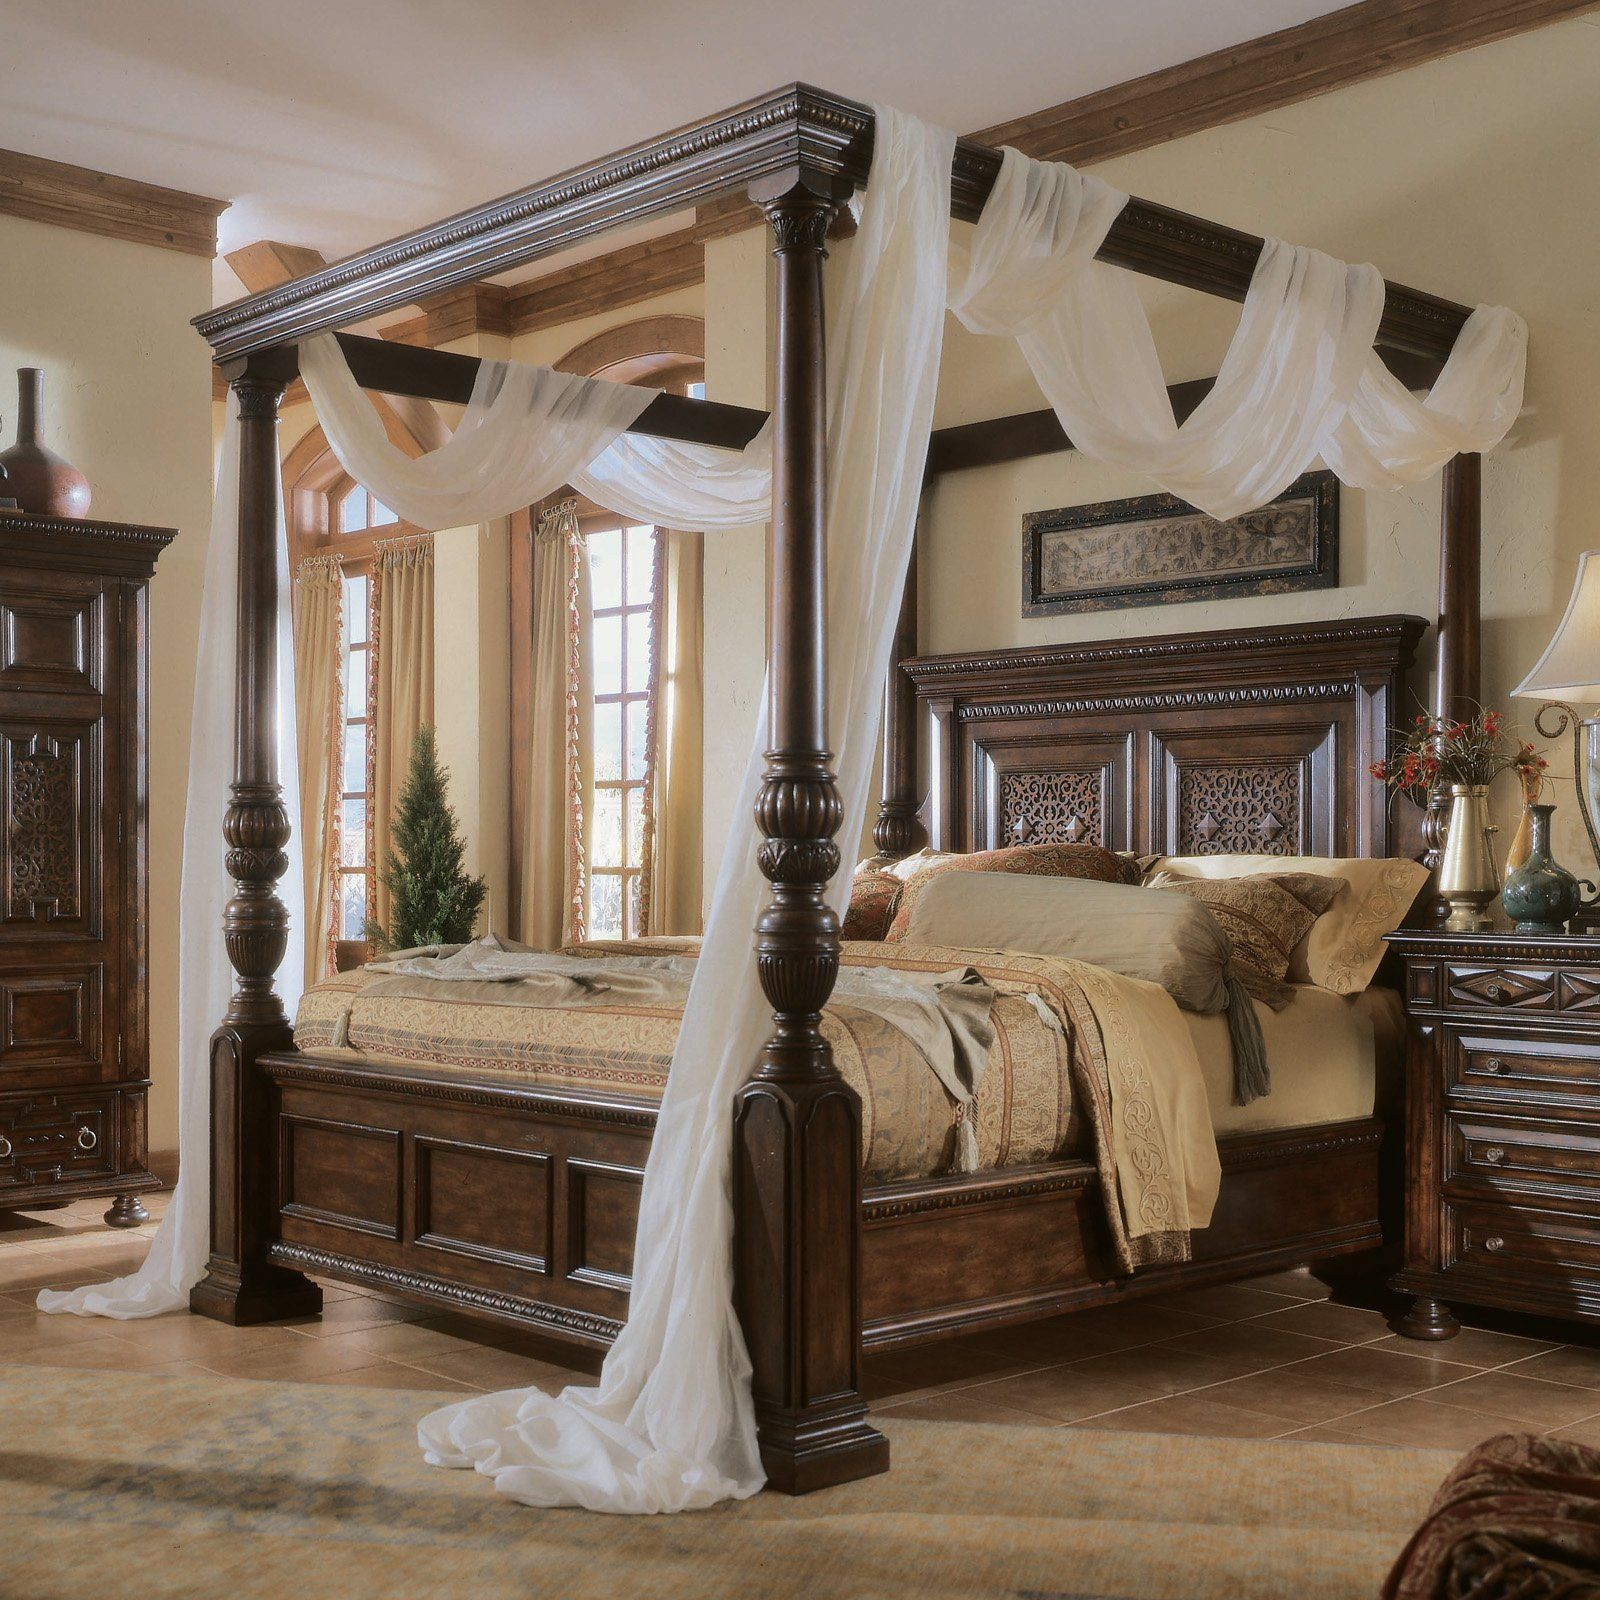 15 most beautiful decorated and designed beds | canopy, damask